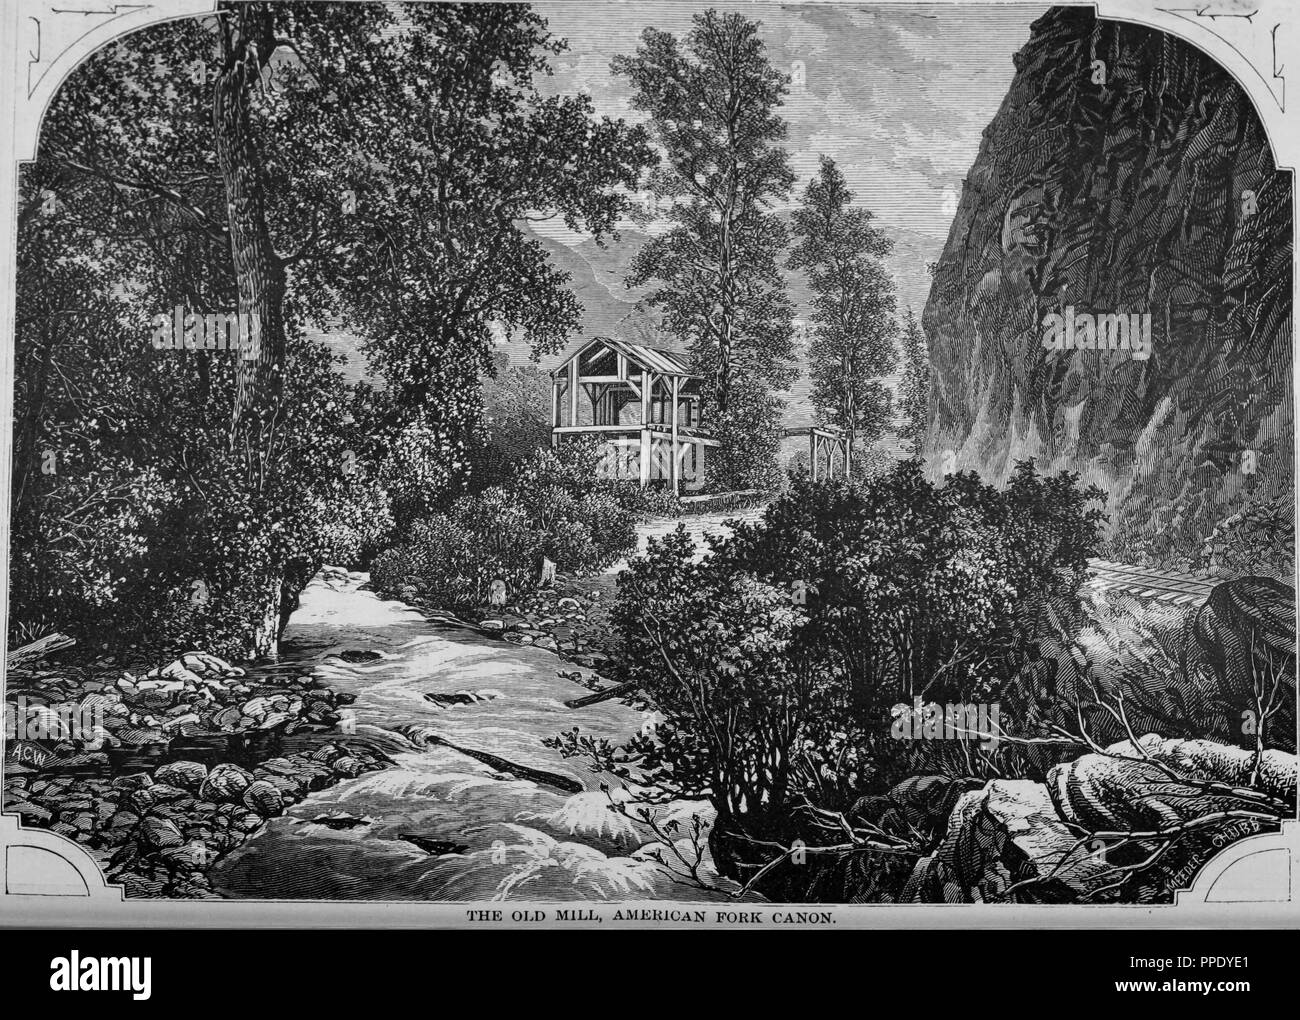 Engraving of the old mill in the American Fork Canyon, Utah, from the book 'The Pacific tourist', 1877. Courtesy Internet Archive. () - Stock Image